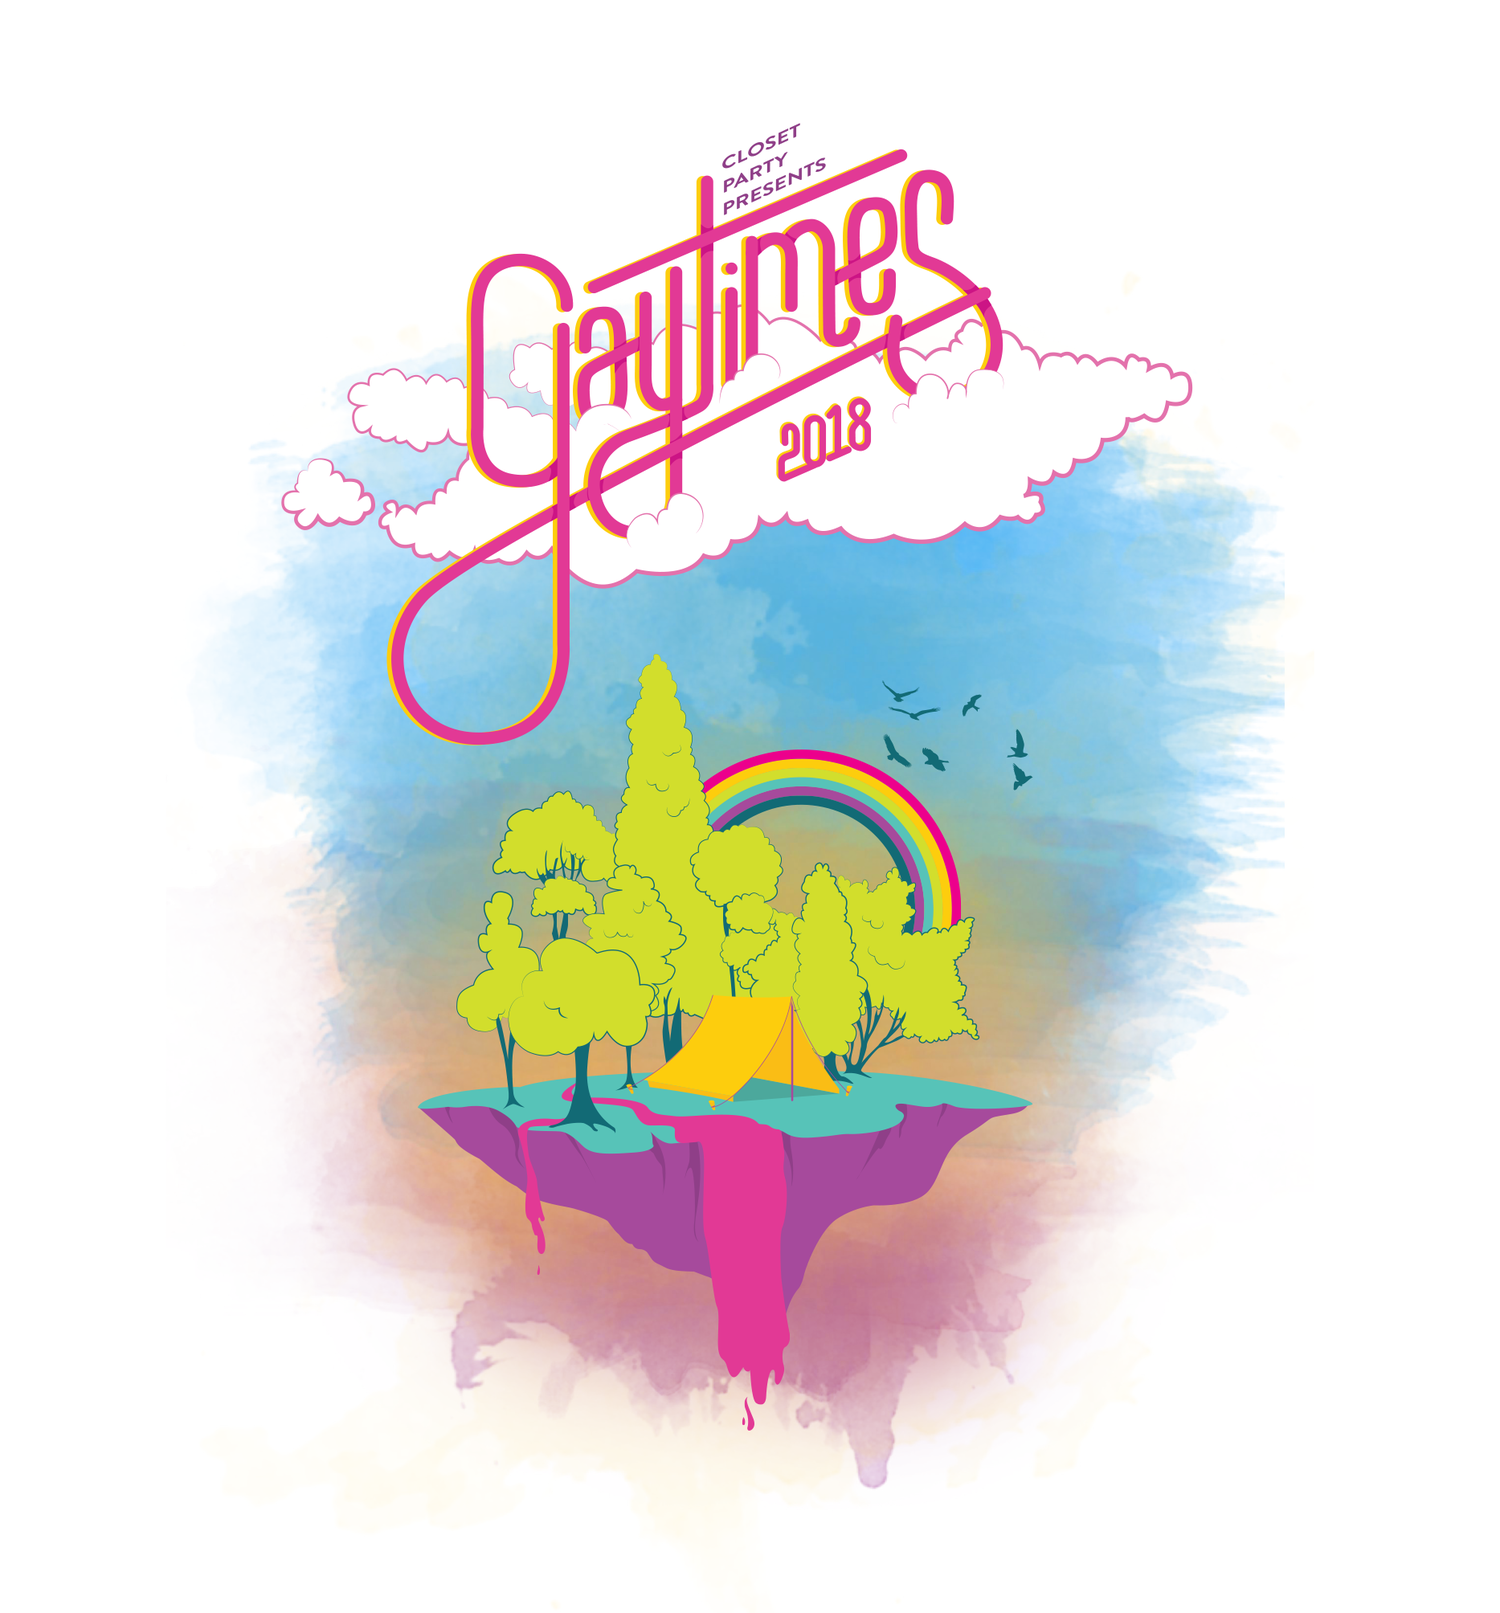 gaytimes - Site Manager